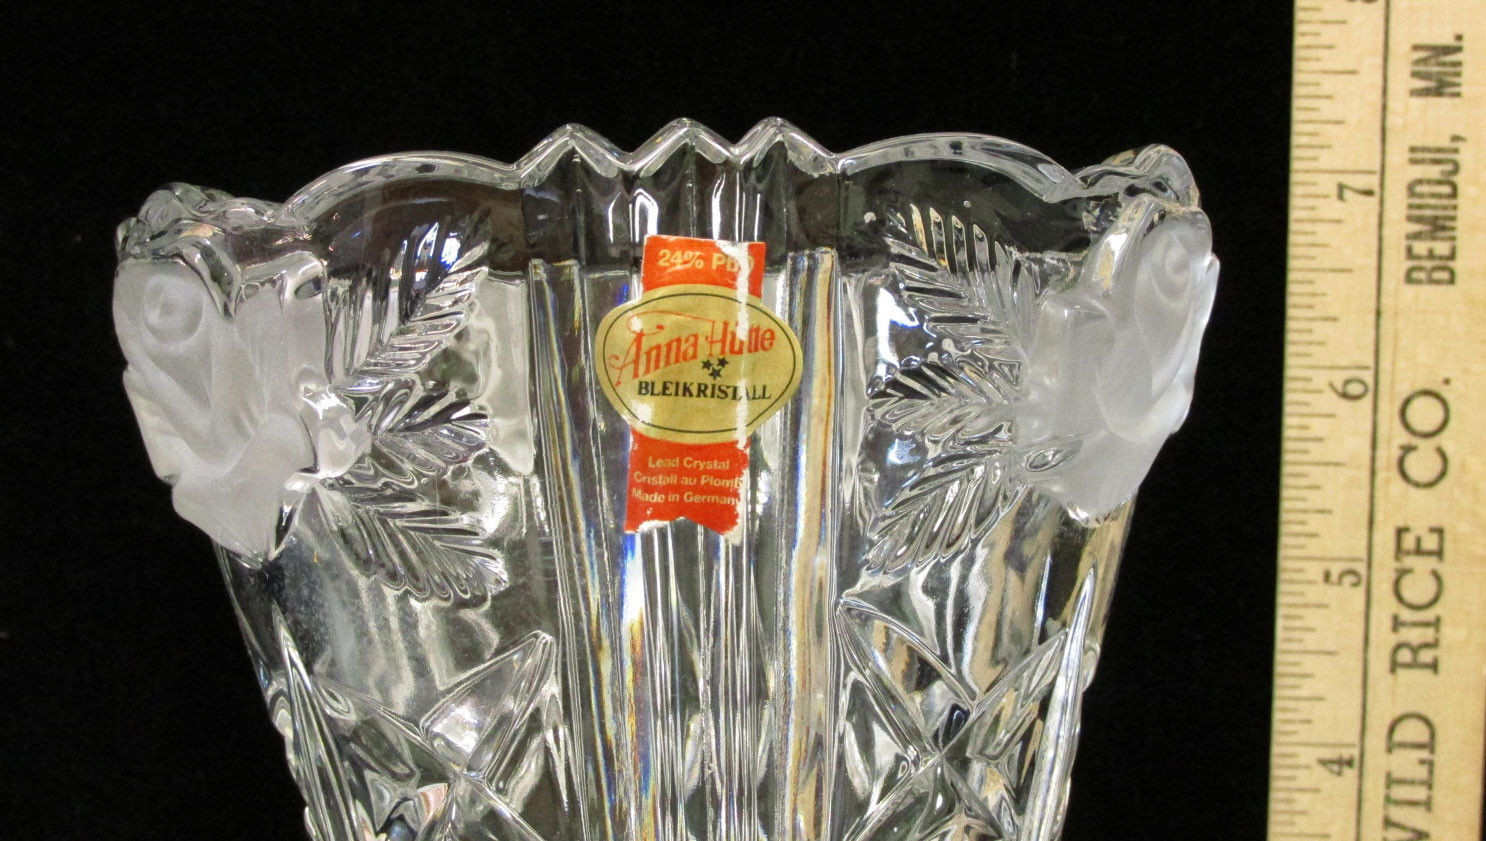 lalique sylvie dove vase of glass crystal vase frosted rose anna hutte bleikristall 7 3 4 tall with 2 of 4